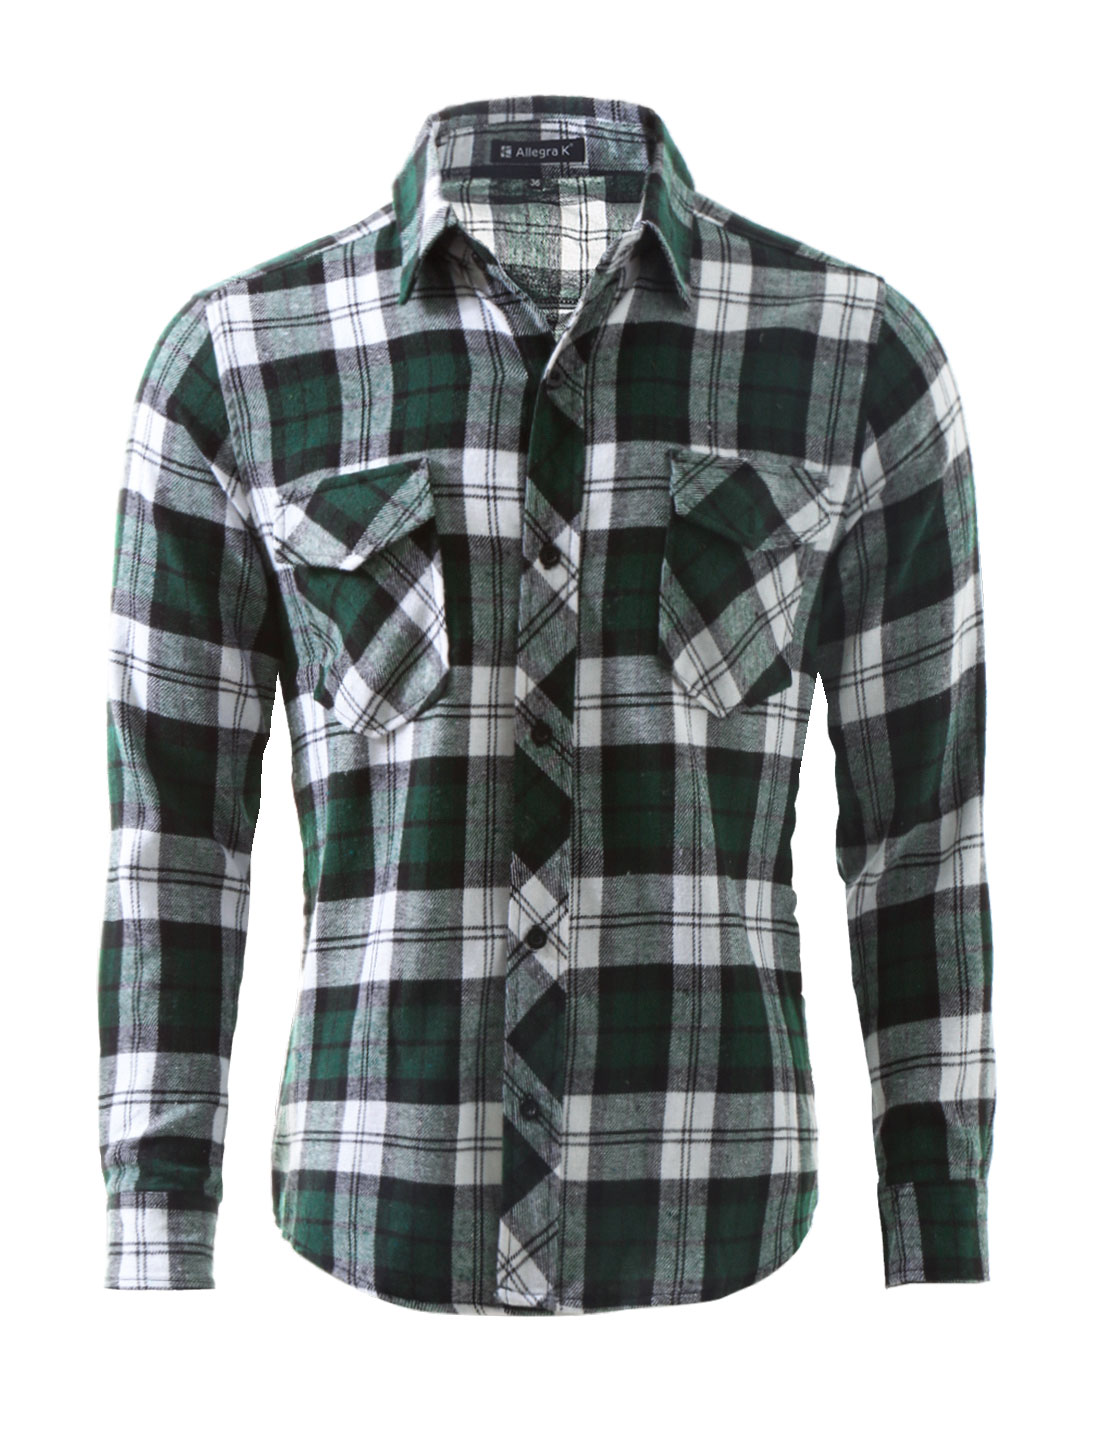 Unique Bargains Men S Button Up Plaid Flannel Shirt Green Size L